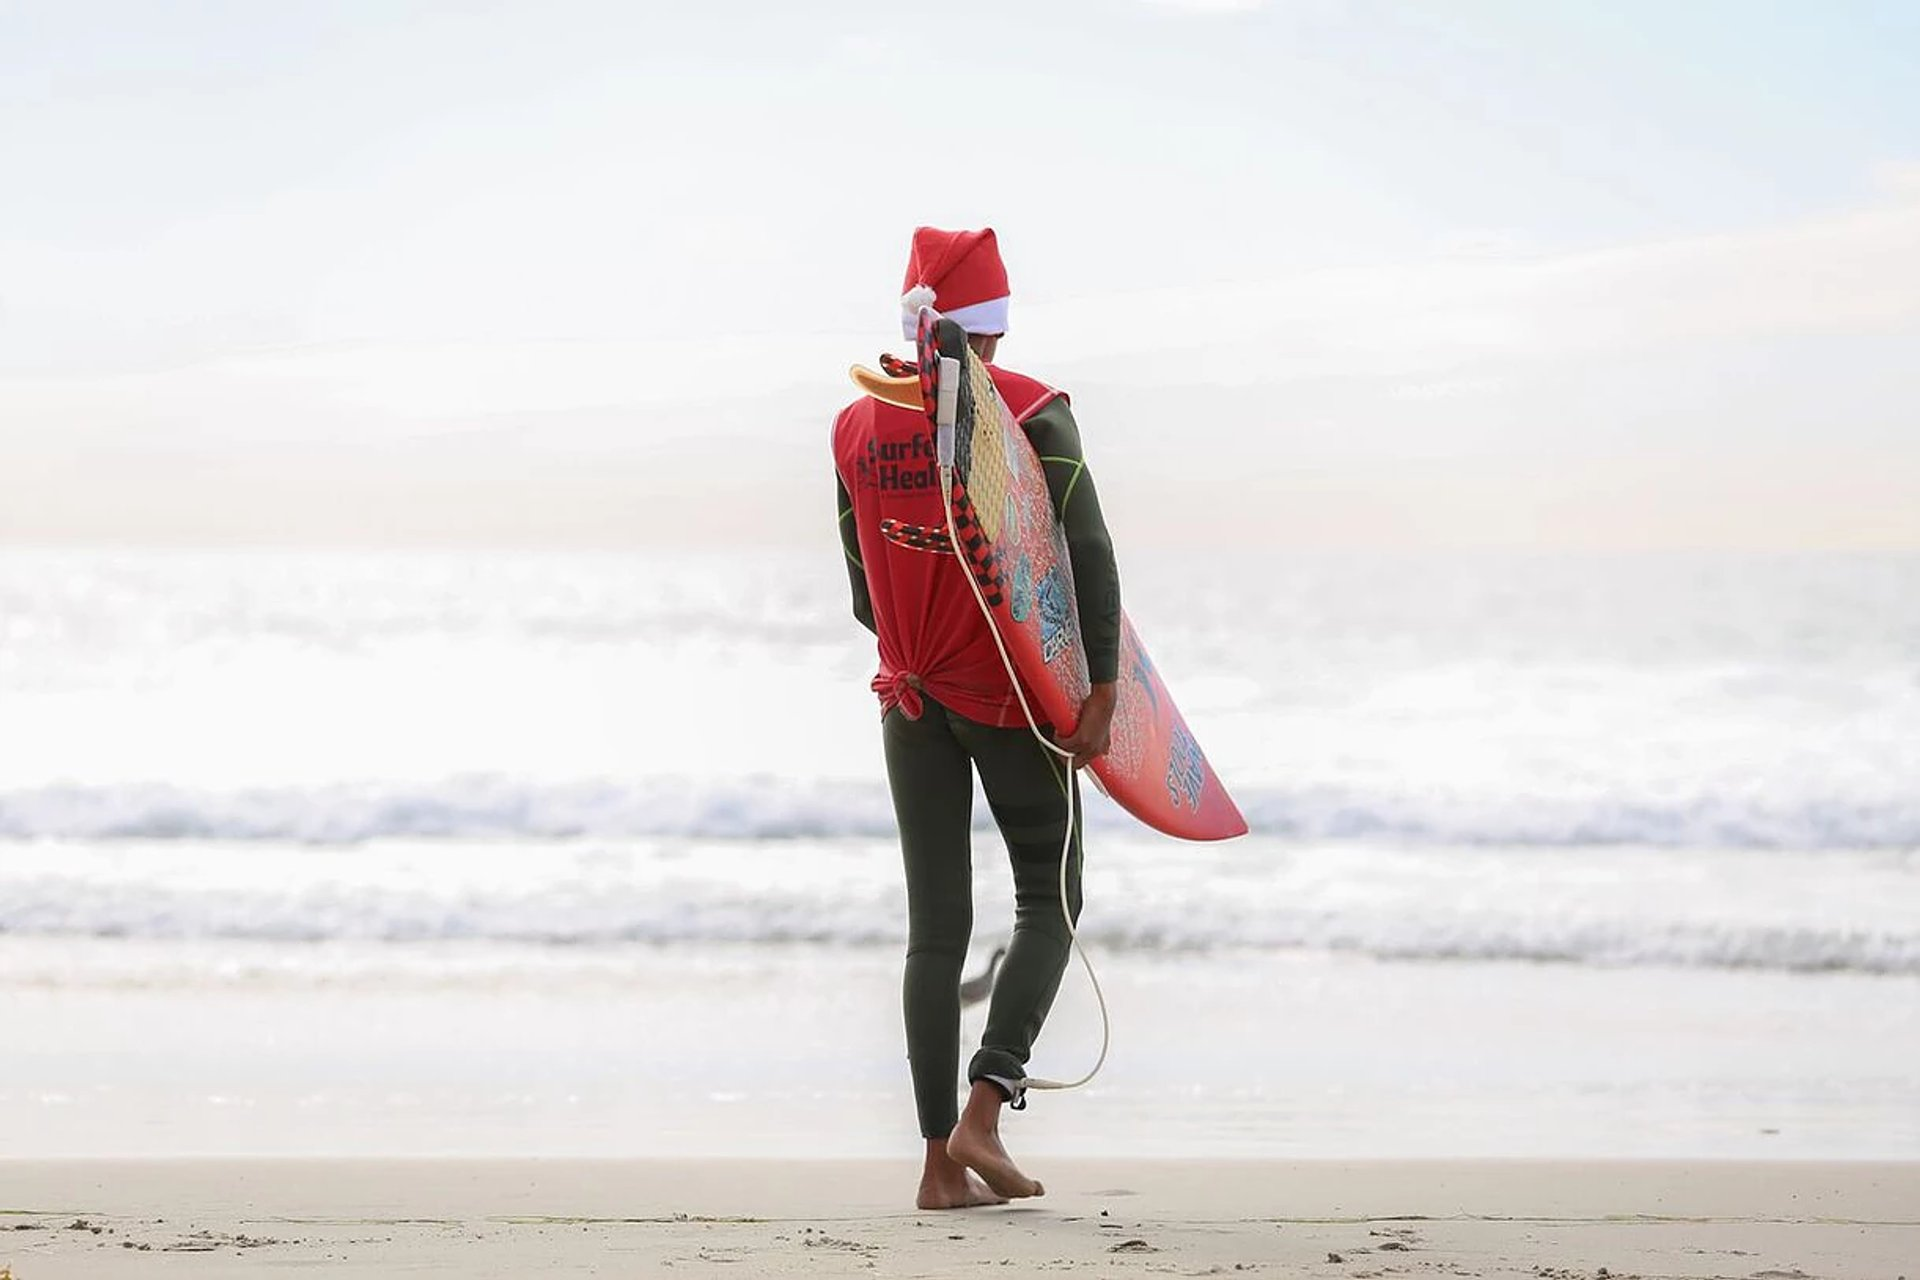 Surfing Santa Competition in Los Angeles - Best Season 2020